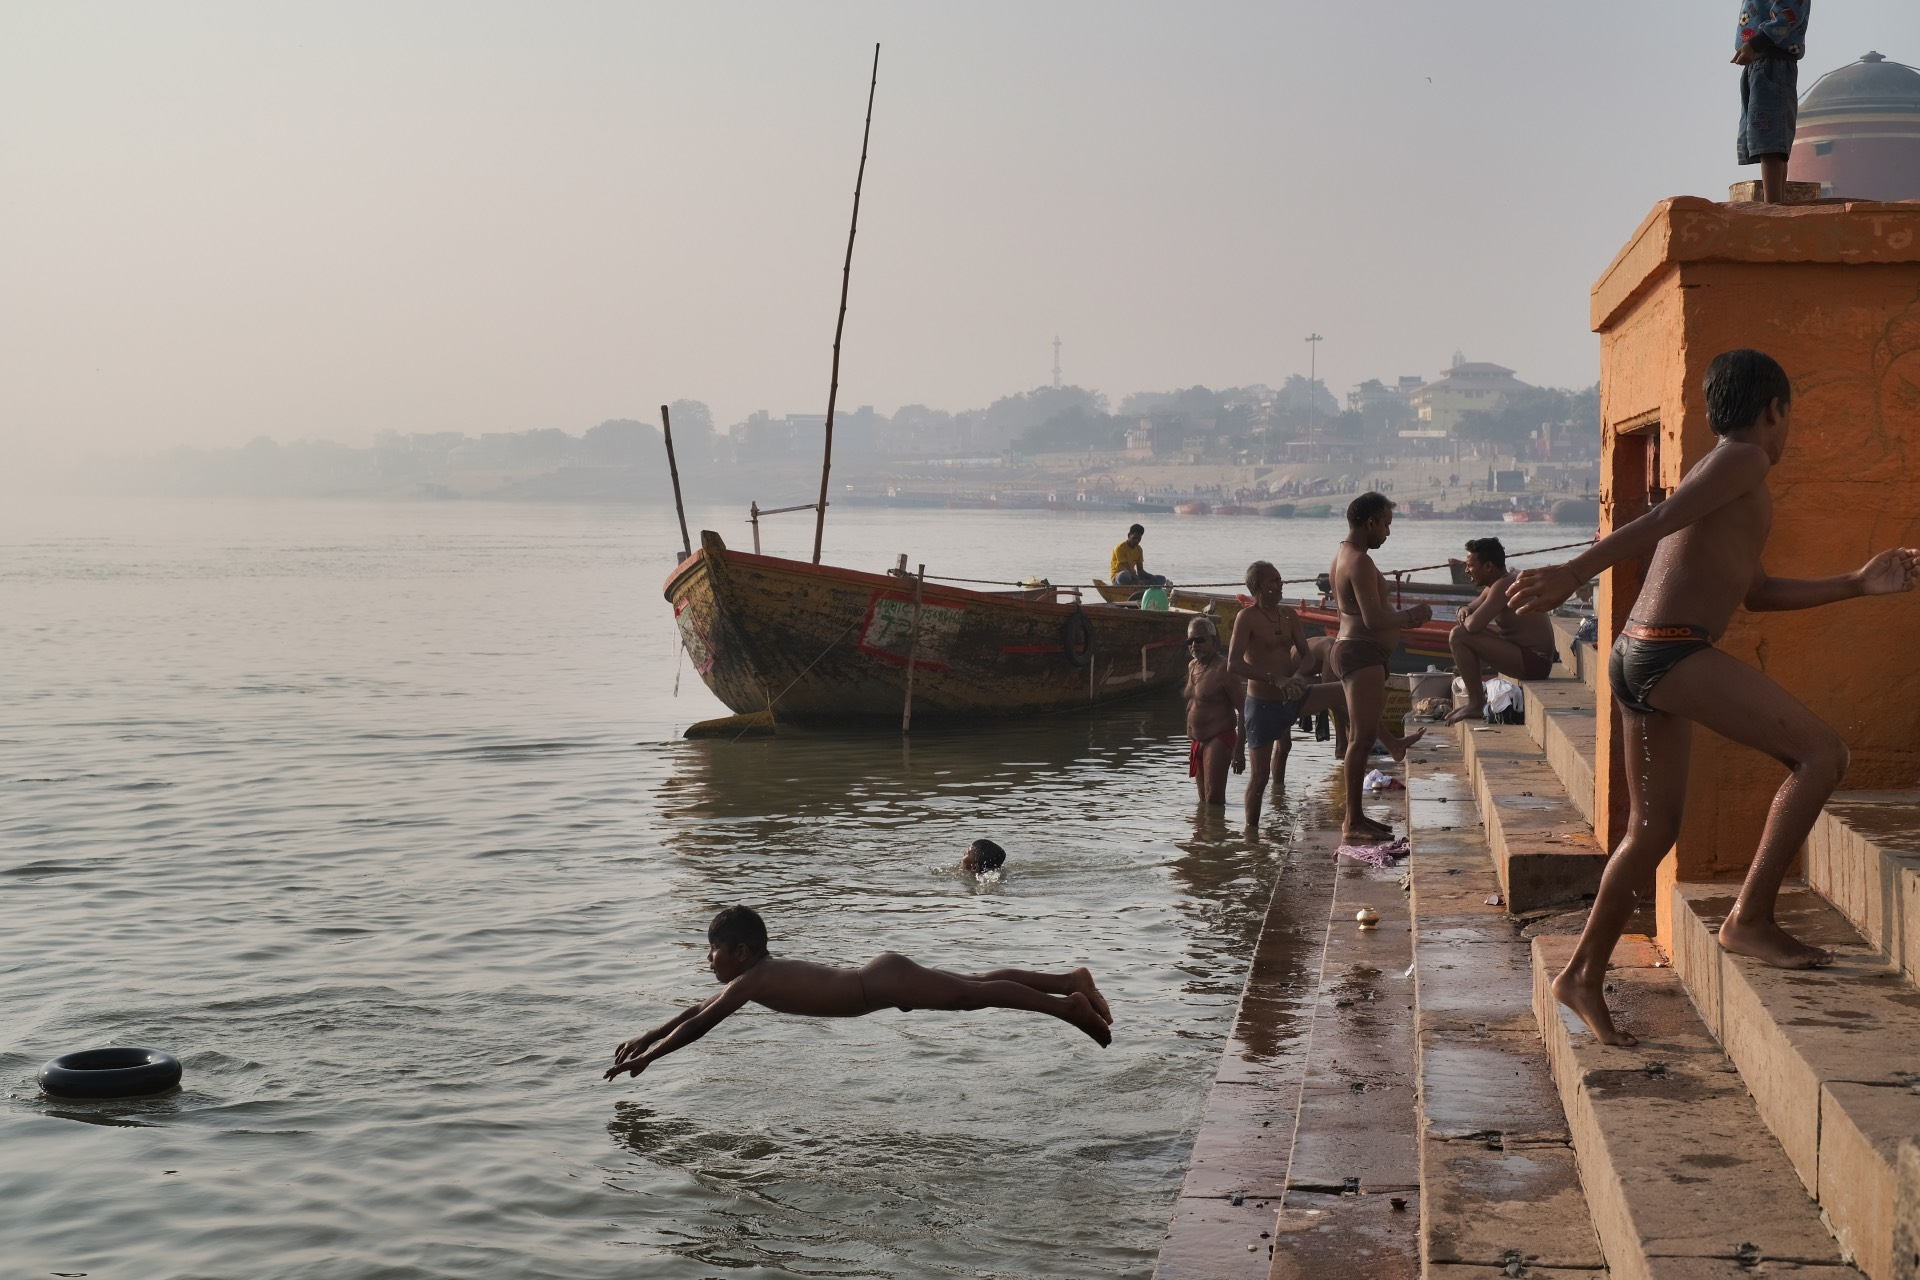 Photographing India, Part 1: Introduction